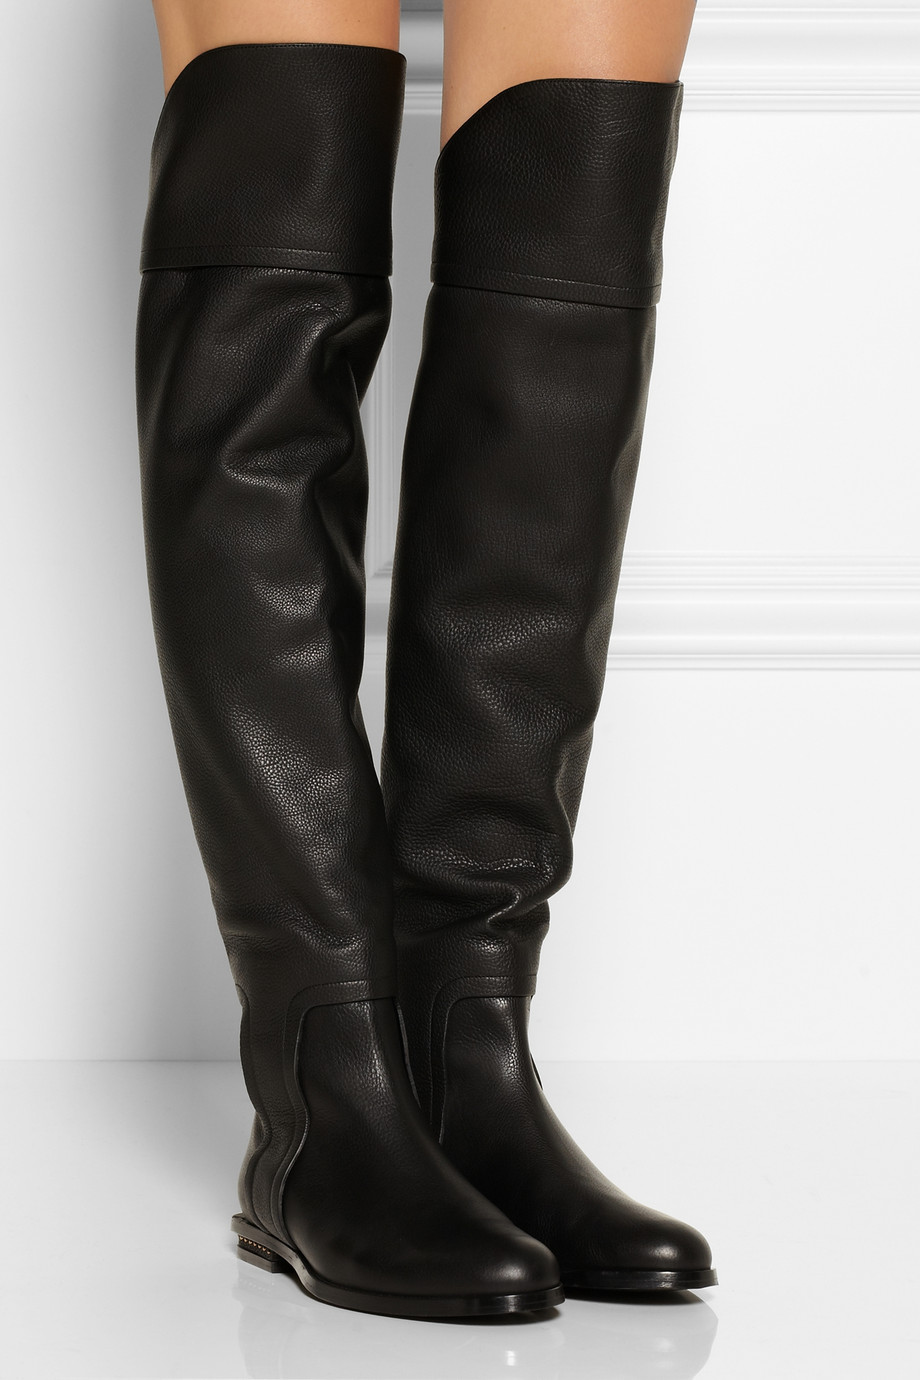 black leather vogue designer flat knee high boots AHWTSNZ